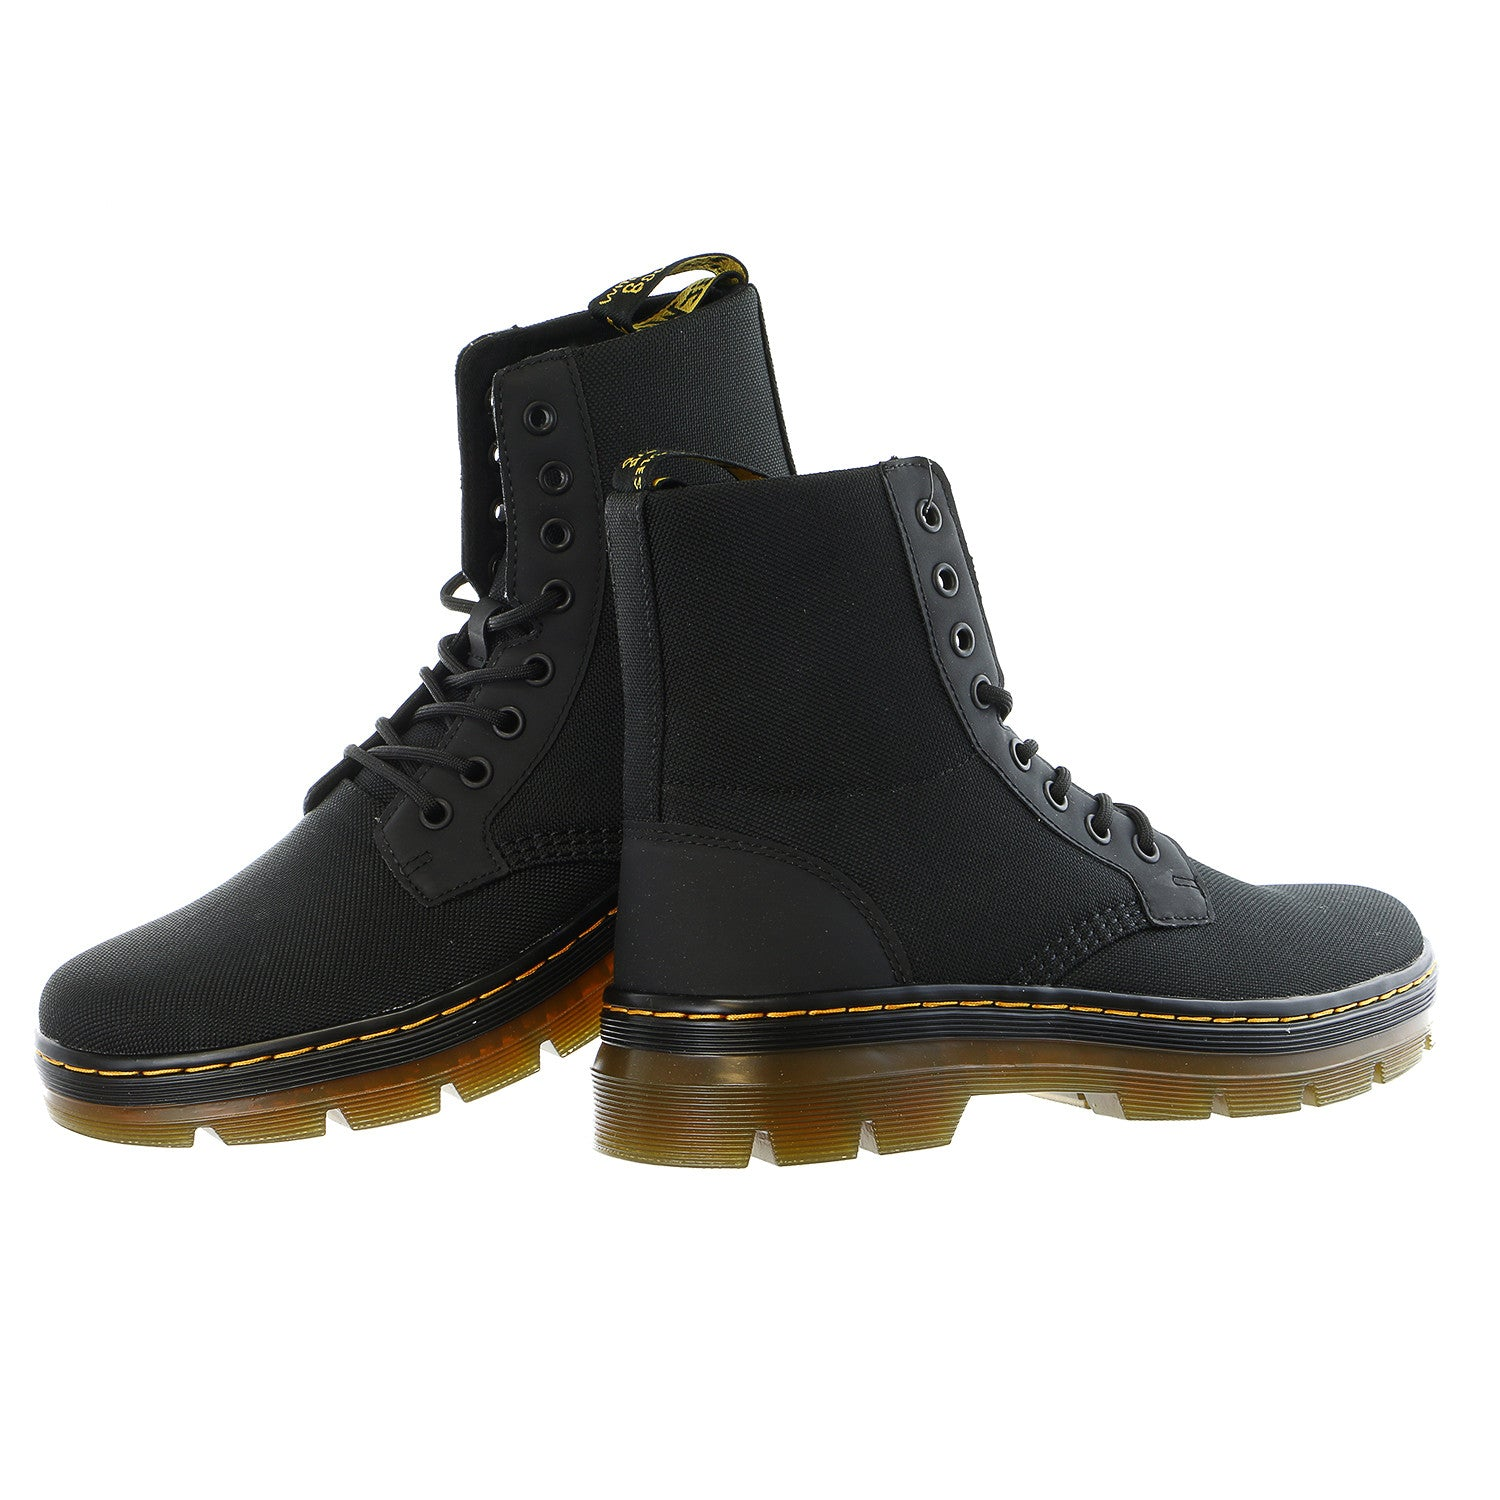 02ad75fd188 Dr. Martens Combs Nylon Lace Up Combat Boot - Men's